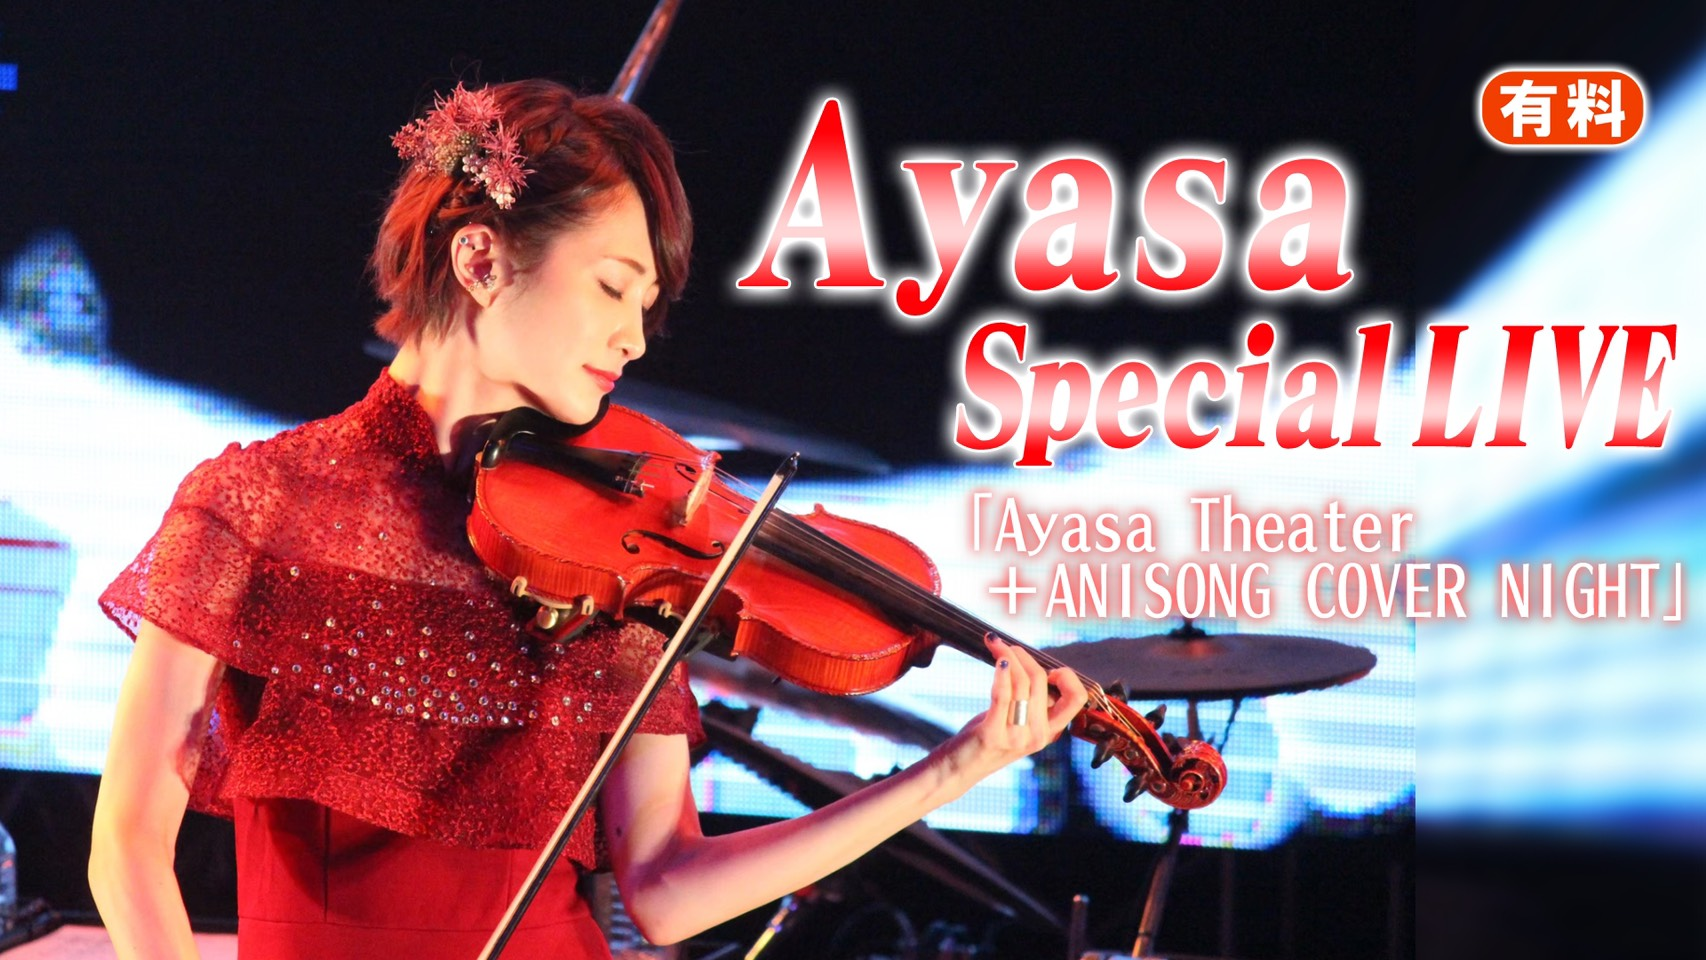 Violinist Ayasa, First-ever Paid Live Concert Broadcast with her Band to Broadcast on Nico Live & Bilibili on September 13!!